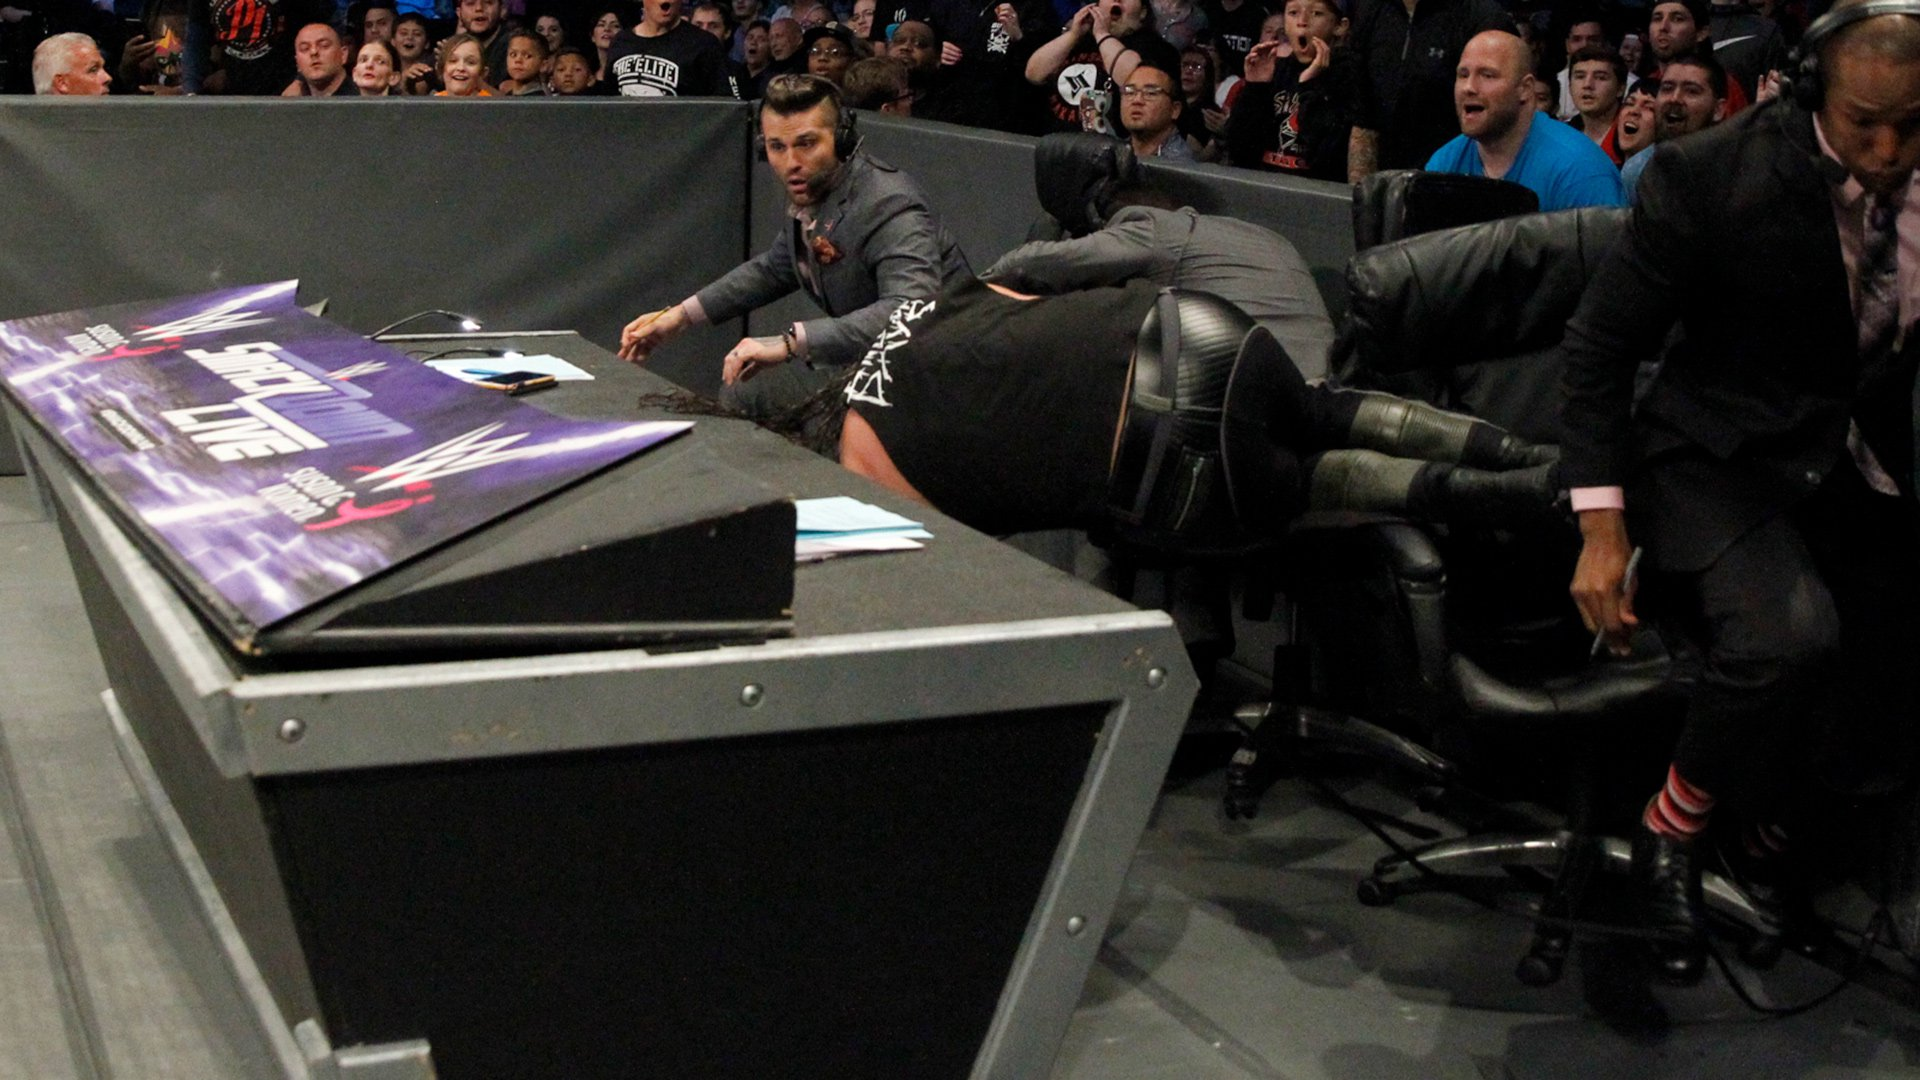 Styles lands a dropkick to send Corbin plummeting over the announce table!